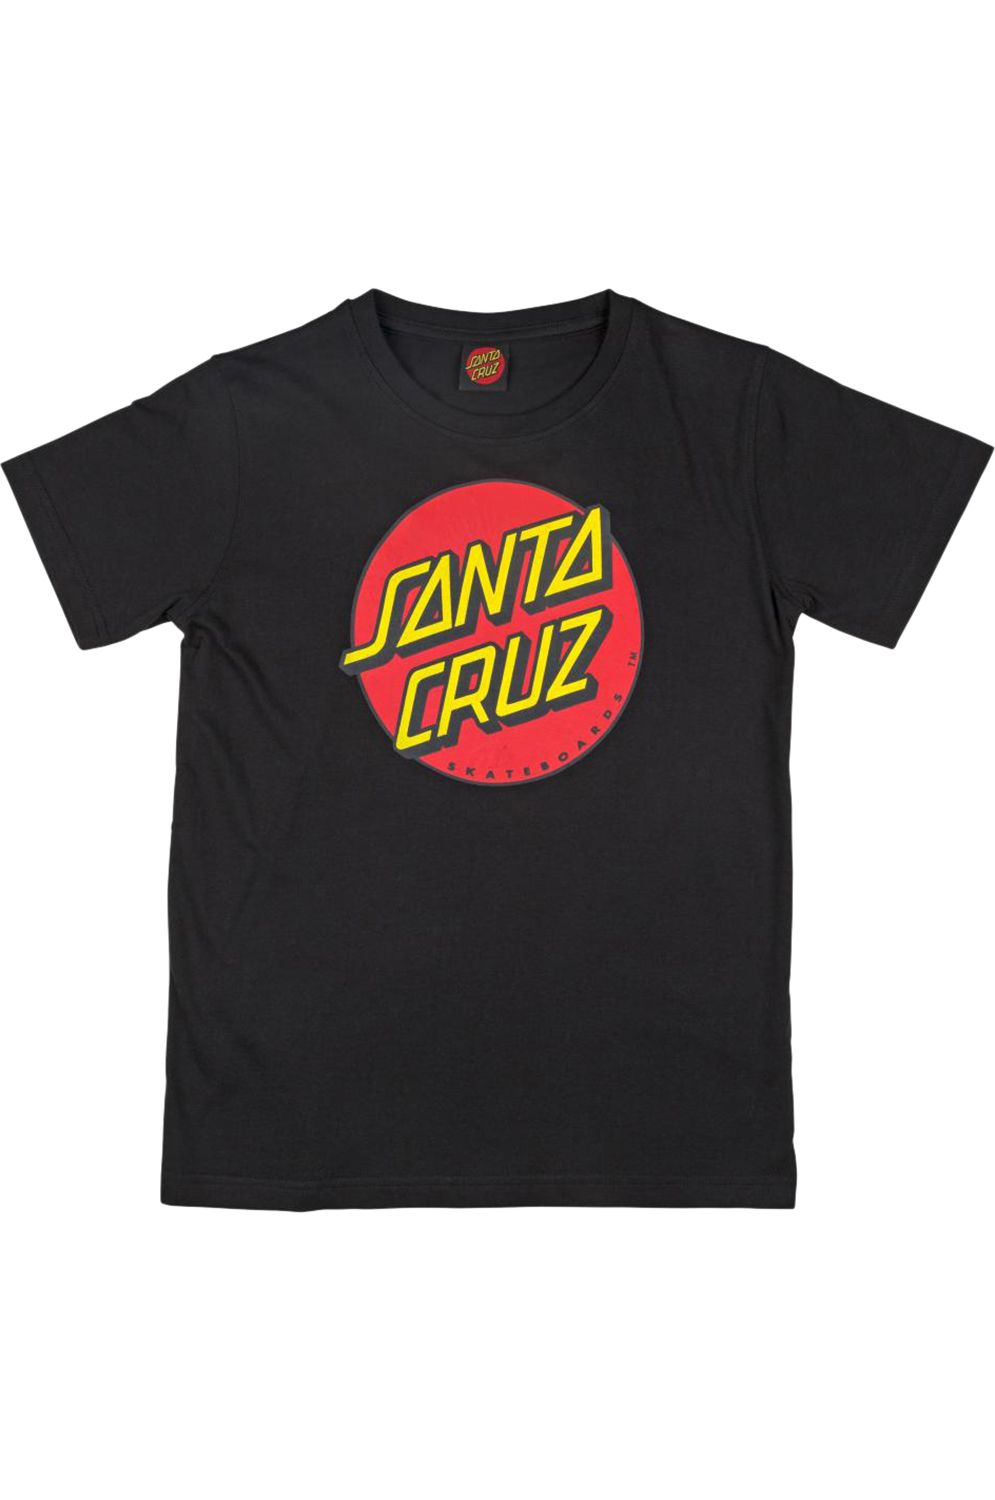 T-Shirt Santa Cruz CLASSIC DOT Black